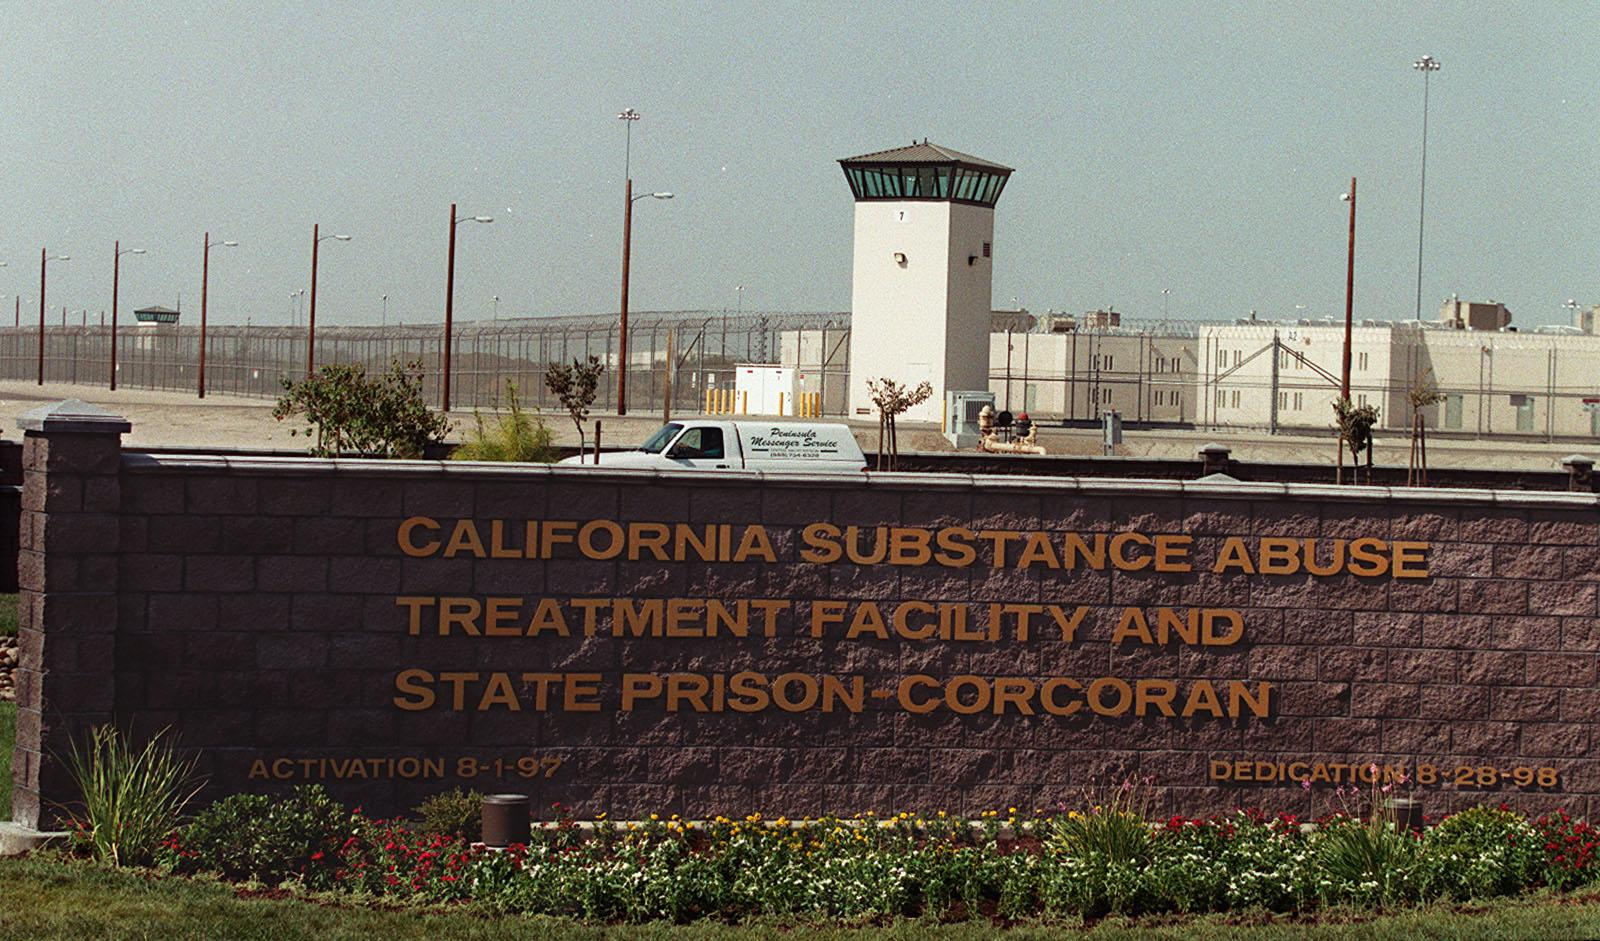 California Substance Abuse Treatment Facility at Corcoran State Prison. (Credit: Online USA via Getty Images)